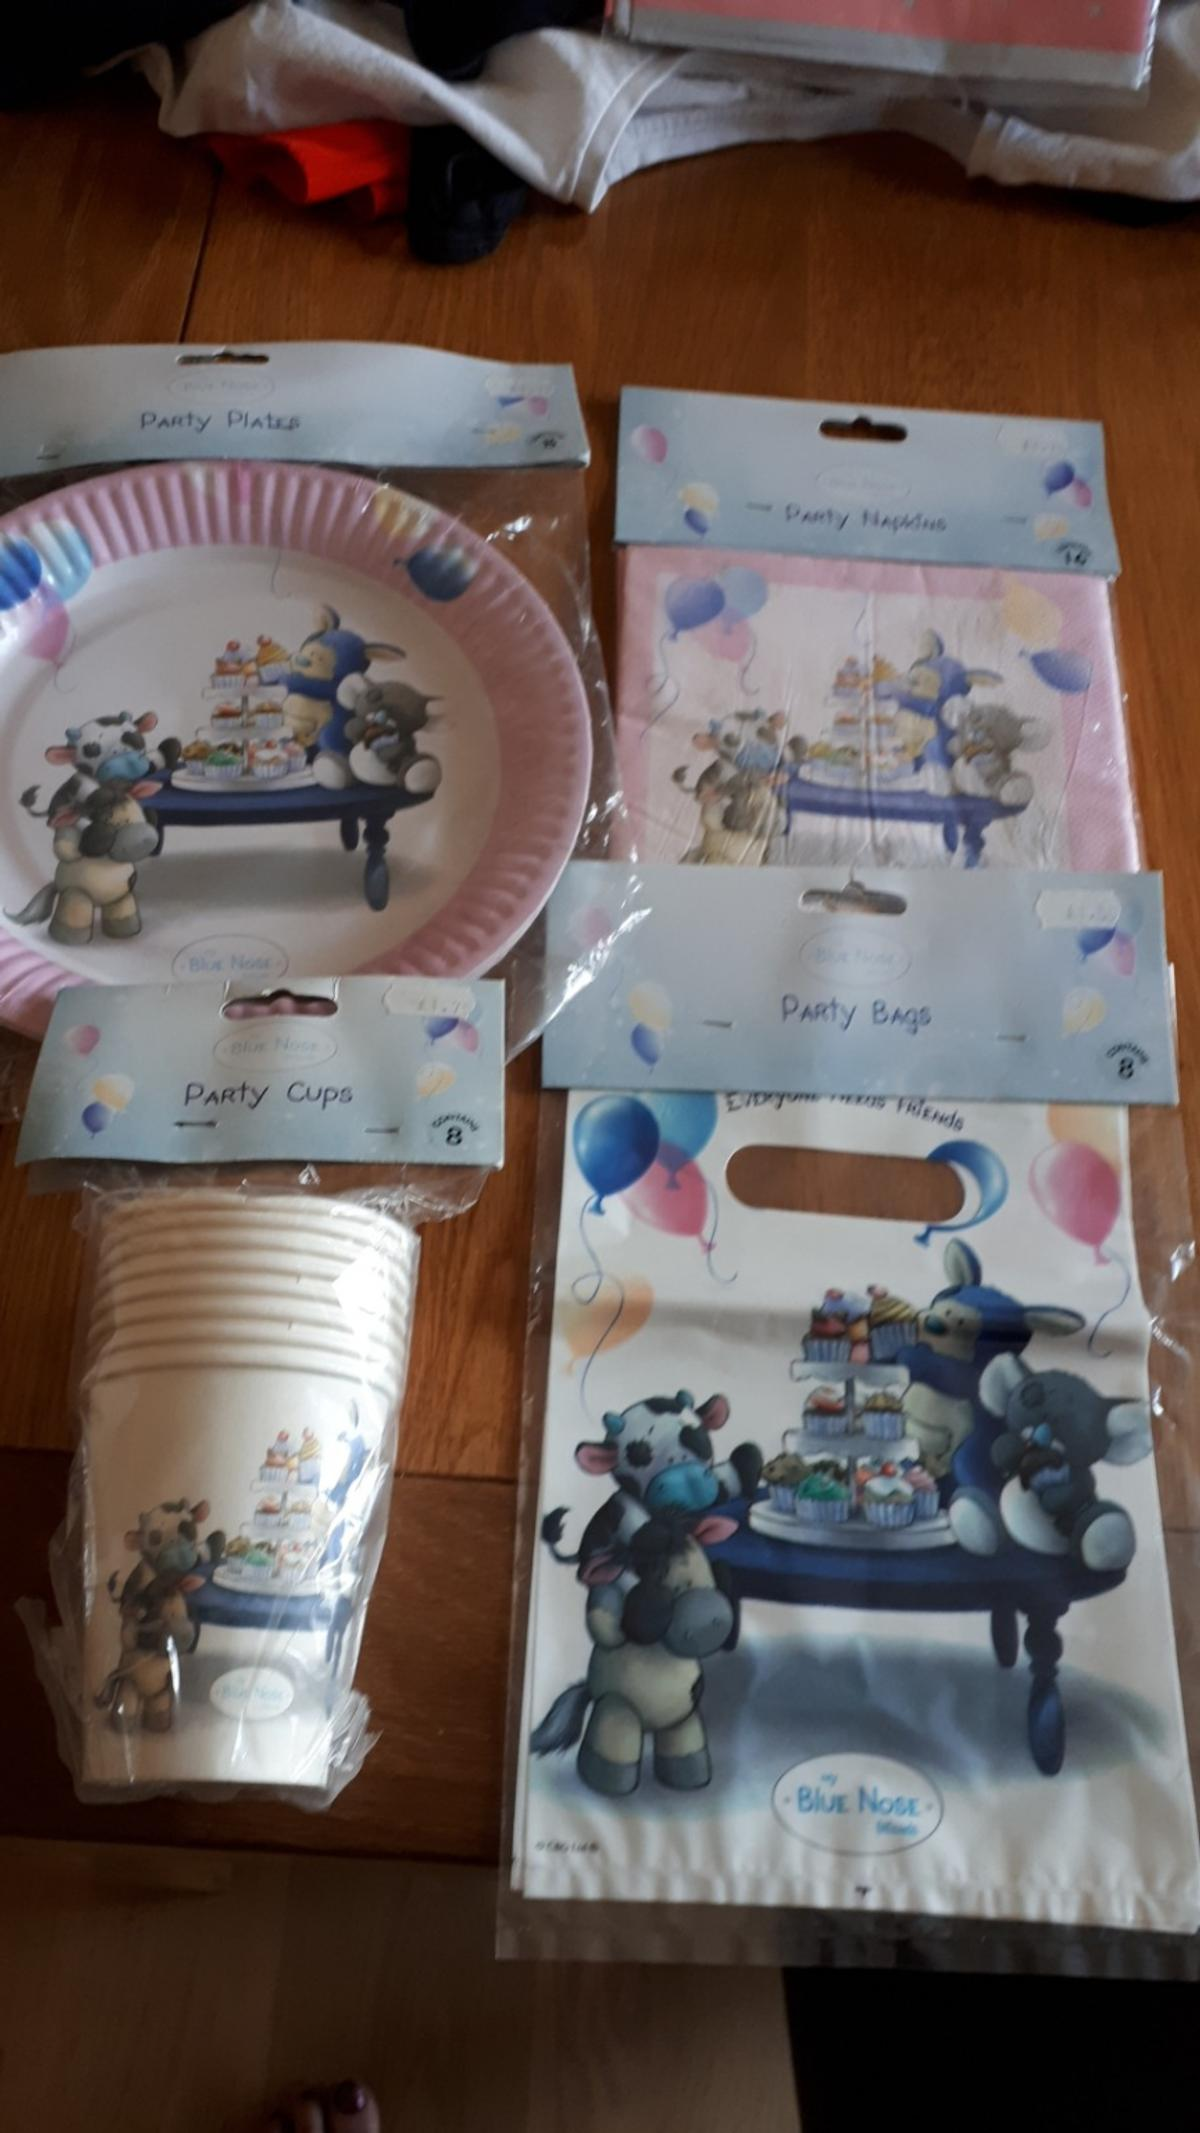 new my blue nose party 16 napkins 8 plates 8 cups and 8 party bags.from smoke and pet free home.collection only